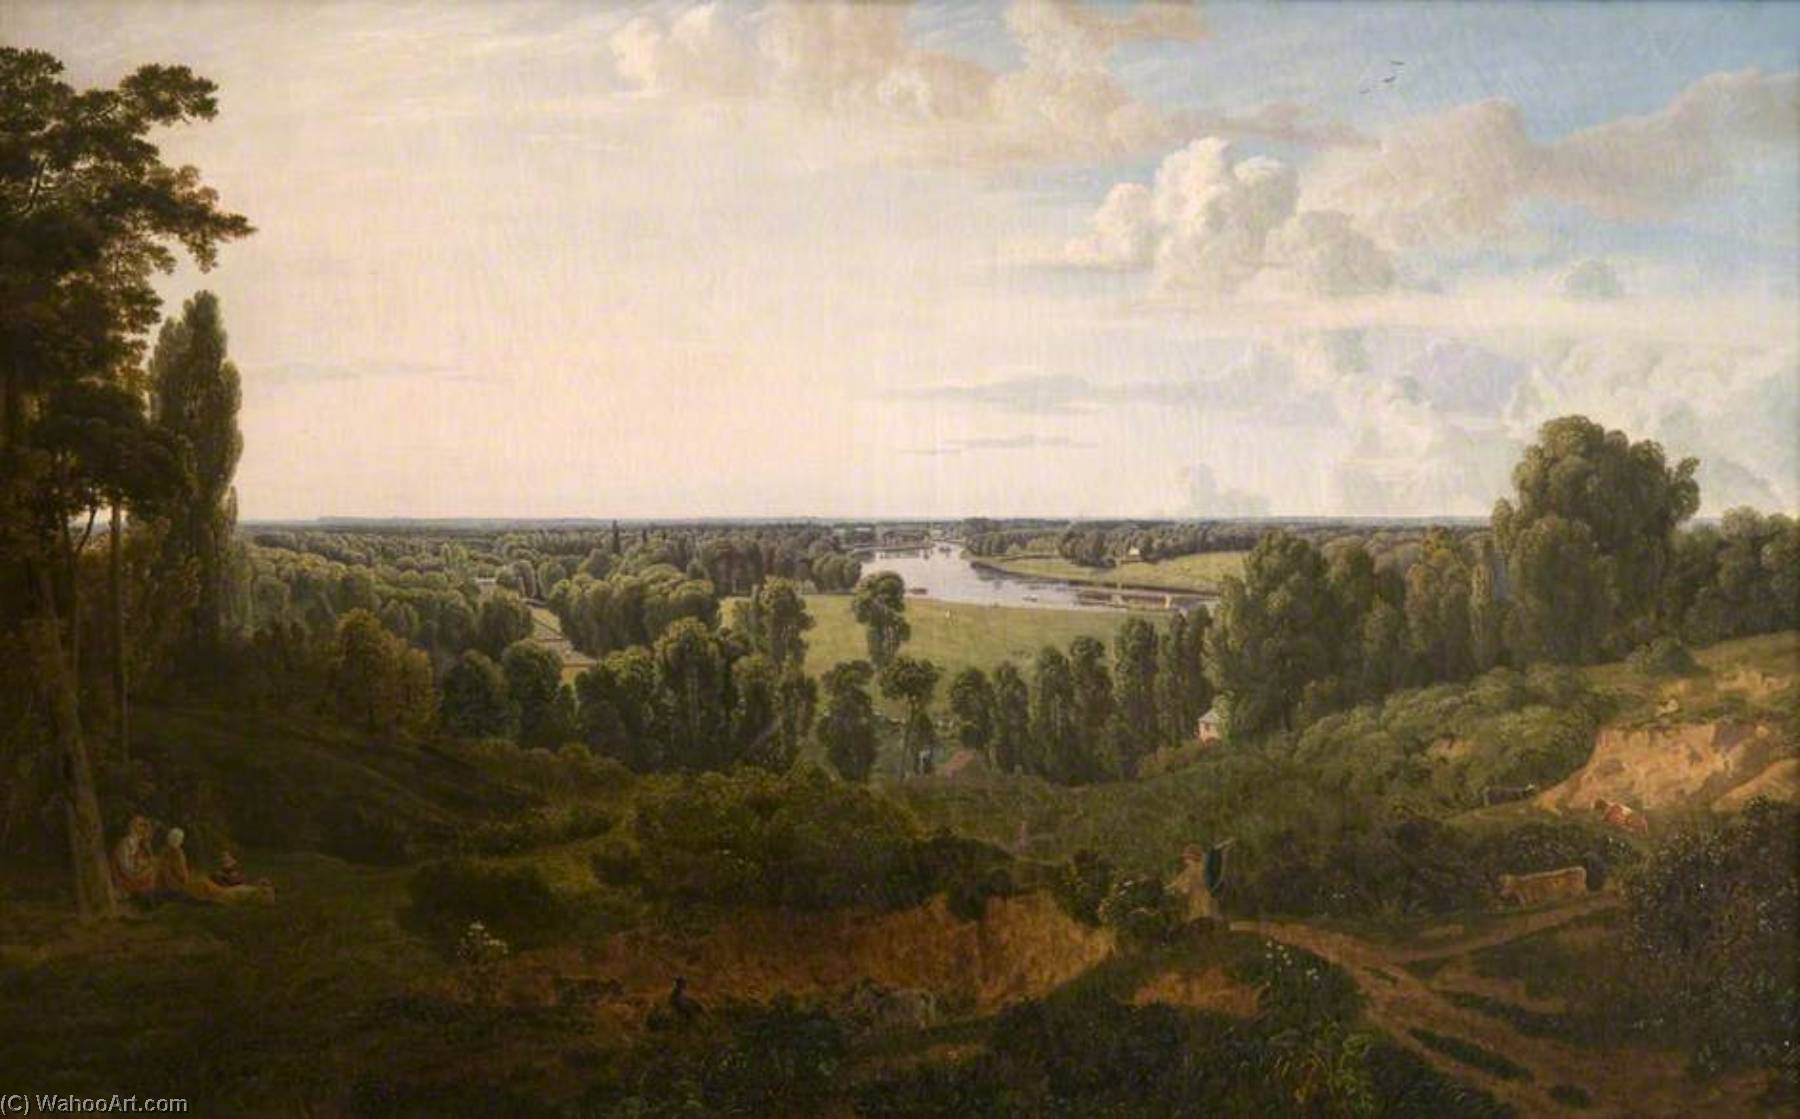 A View from Richmond Hill, Oil On Canvas by Thomas Christopher Hofland (1777-1843)